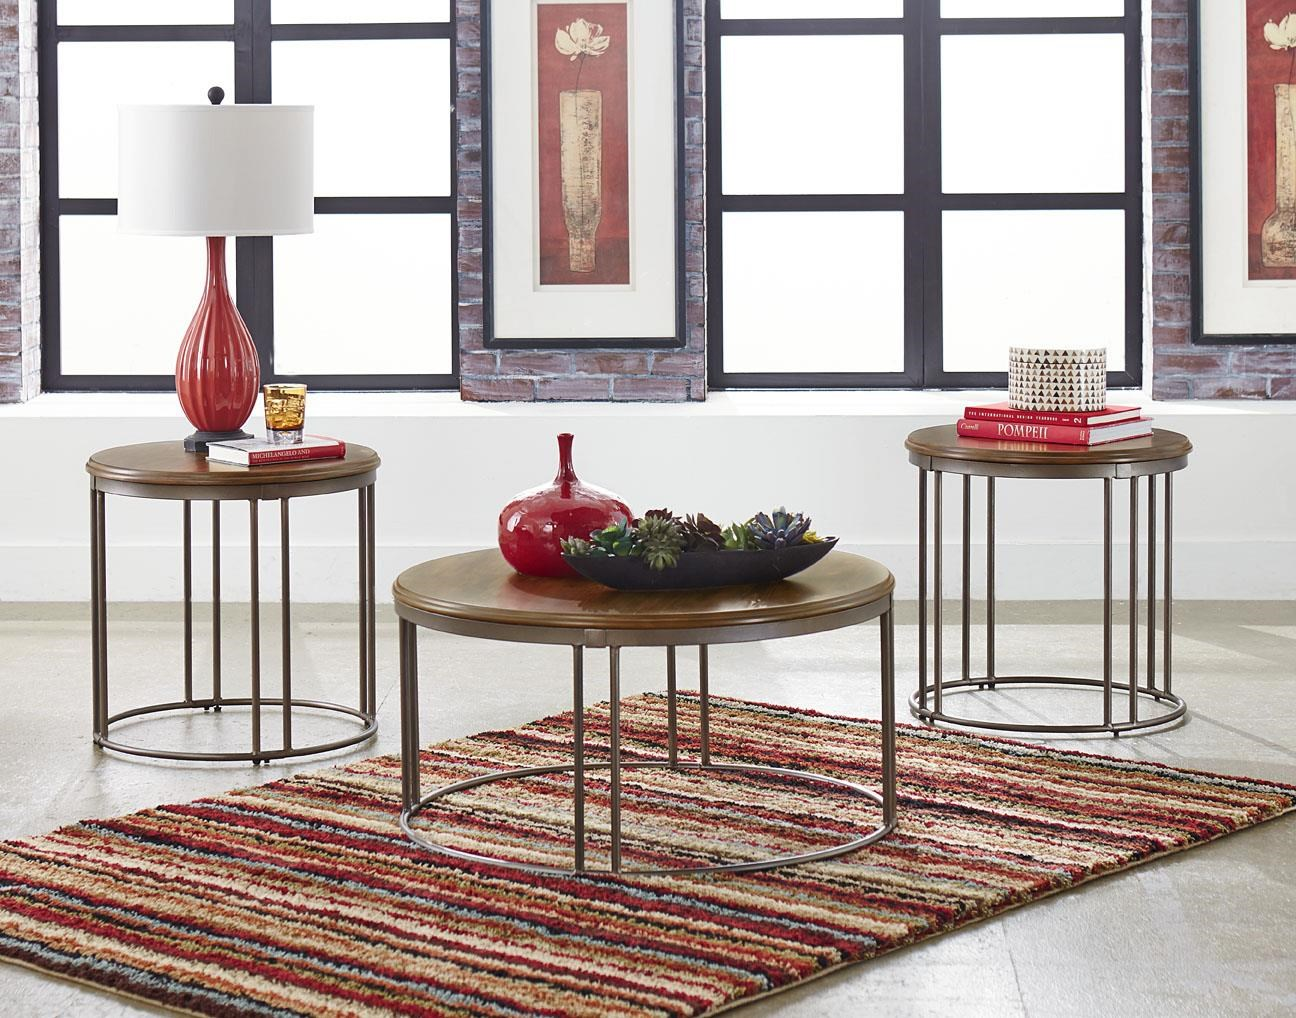 Oslo 3 Pack of Occasional Tables